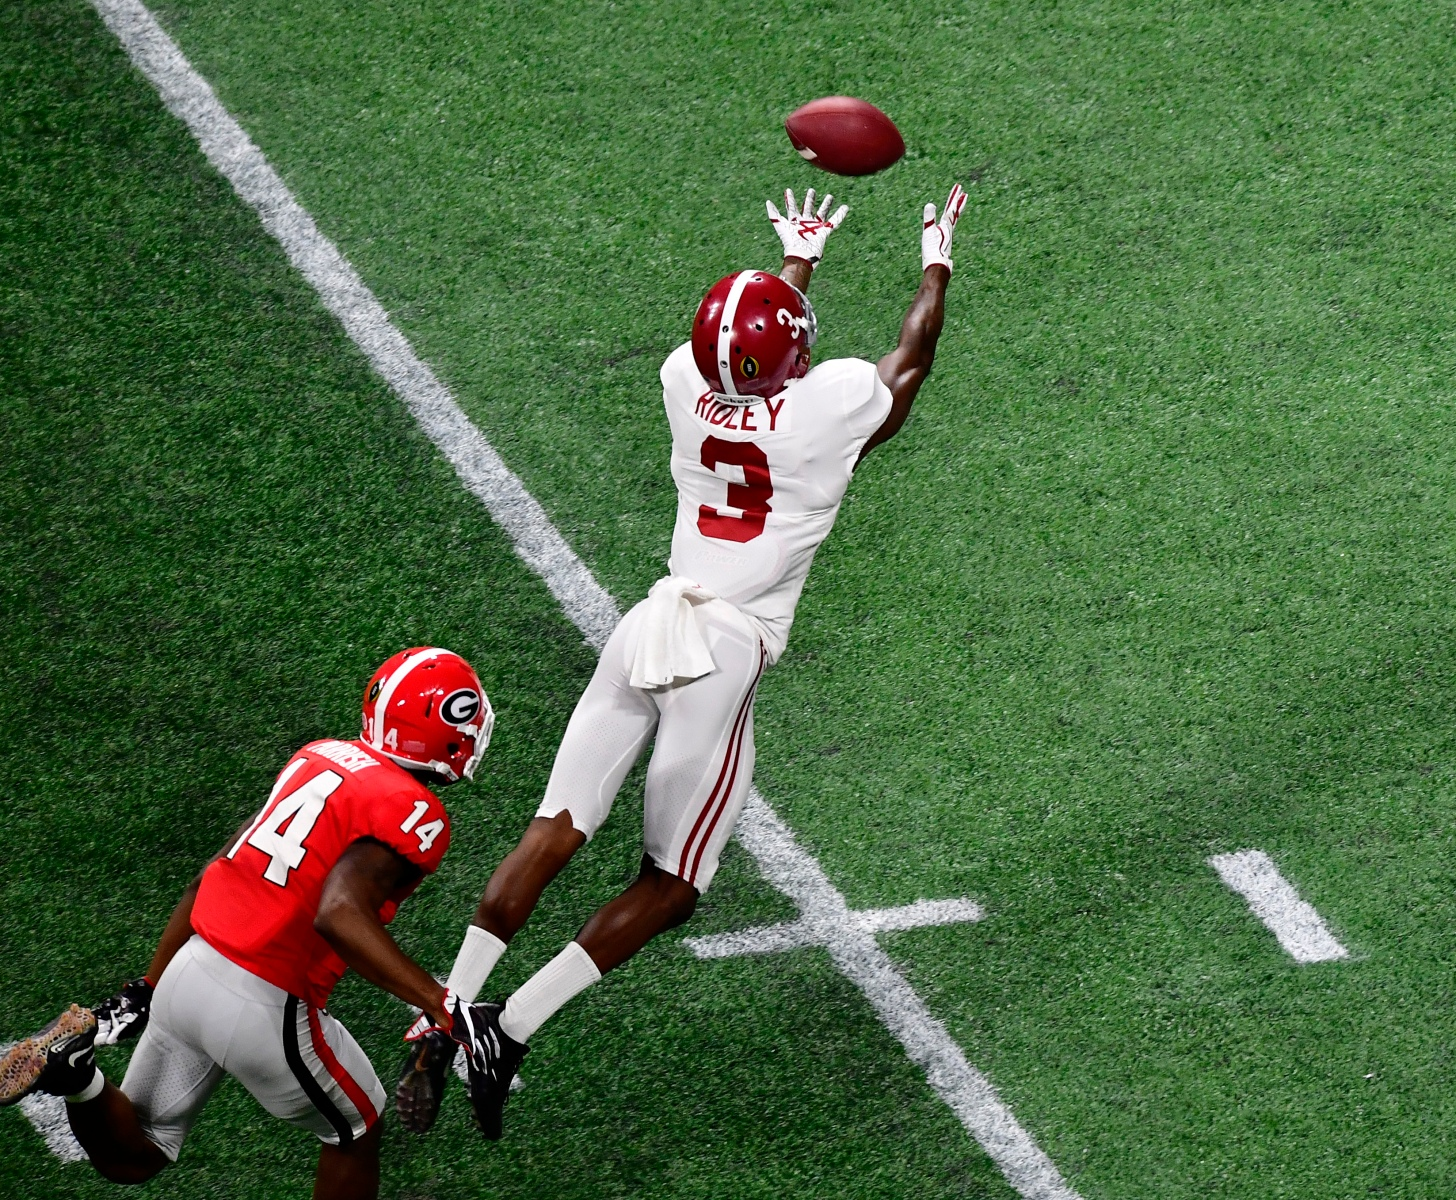 Calvin Ridley #3 of the Alabama Crimson Tide is unable to make a diving catch against the Georgia Bulldogs in the CFP National Championship presented by AT&T at Mercedes-Benz Stadium on January 8, 2018 in Atlanta, Georgia. (Photo by Scott Cunningham/Getty Images)